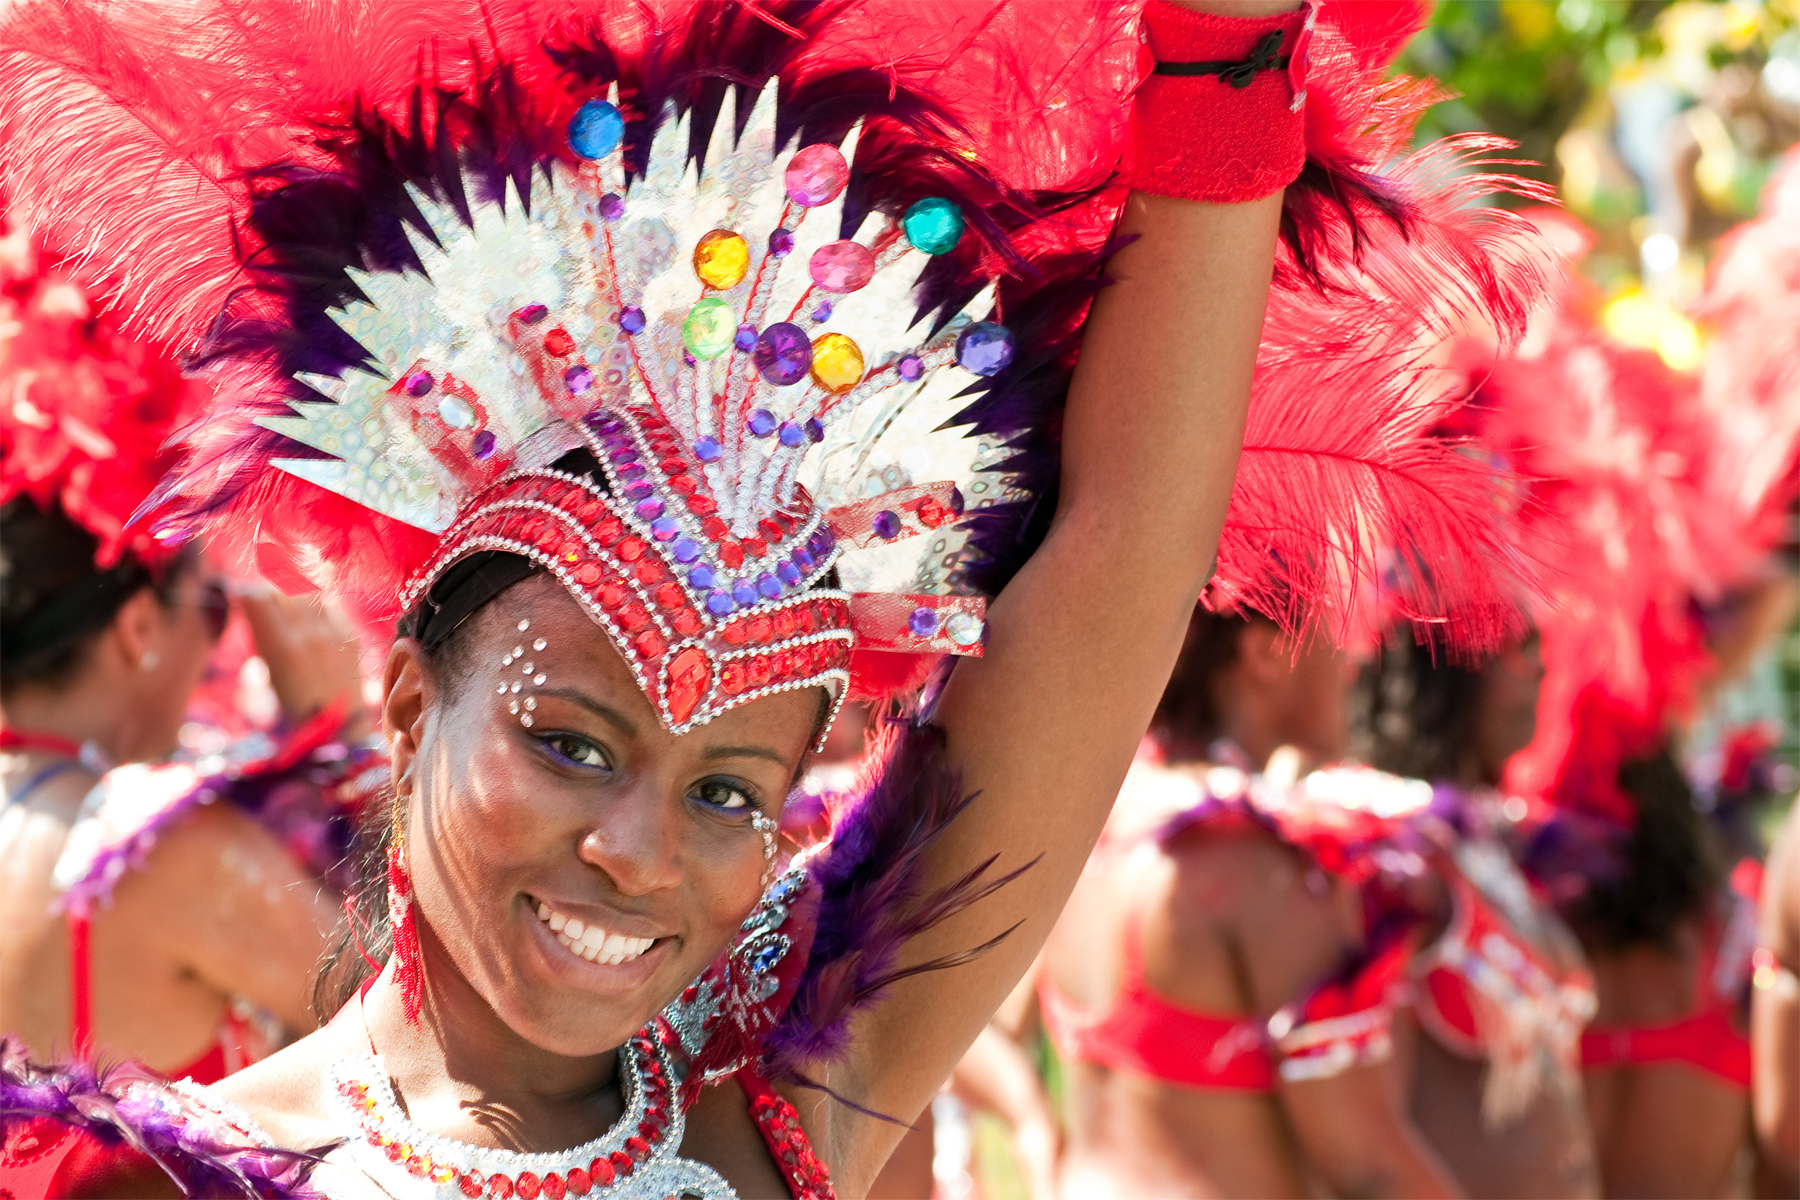 A woman dances in costume at Caribbean Carnival Toronto on July 30, 2011. FLICKR/Chris Cheung